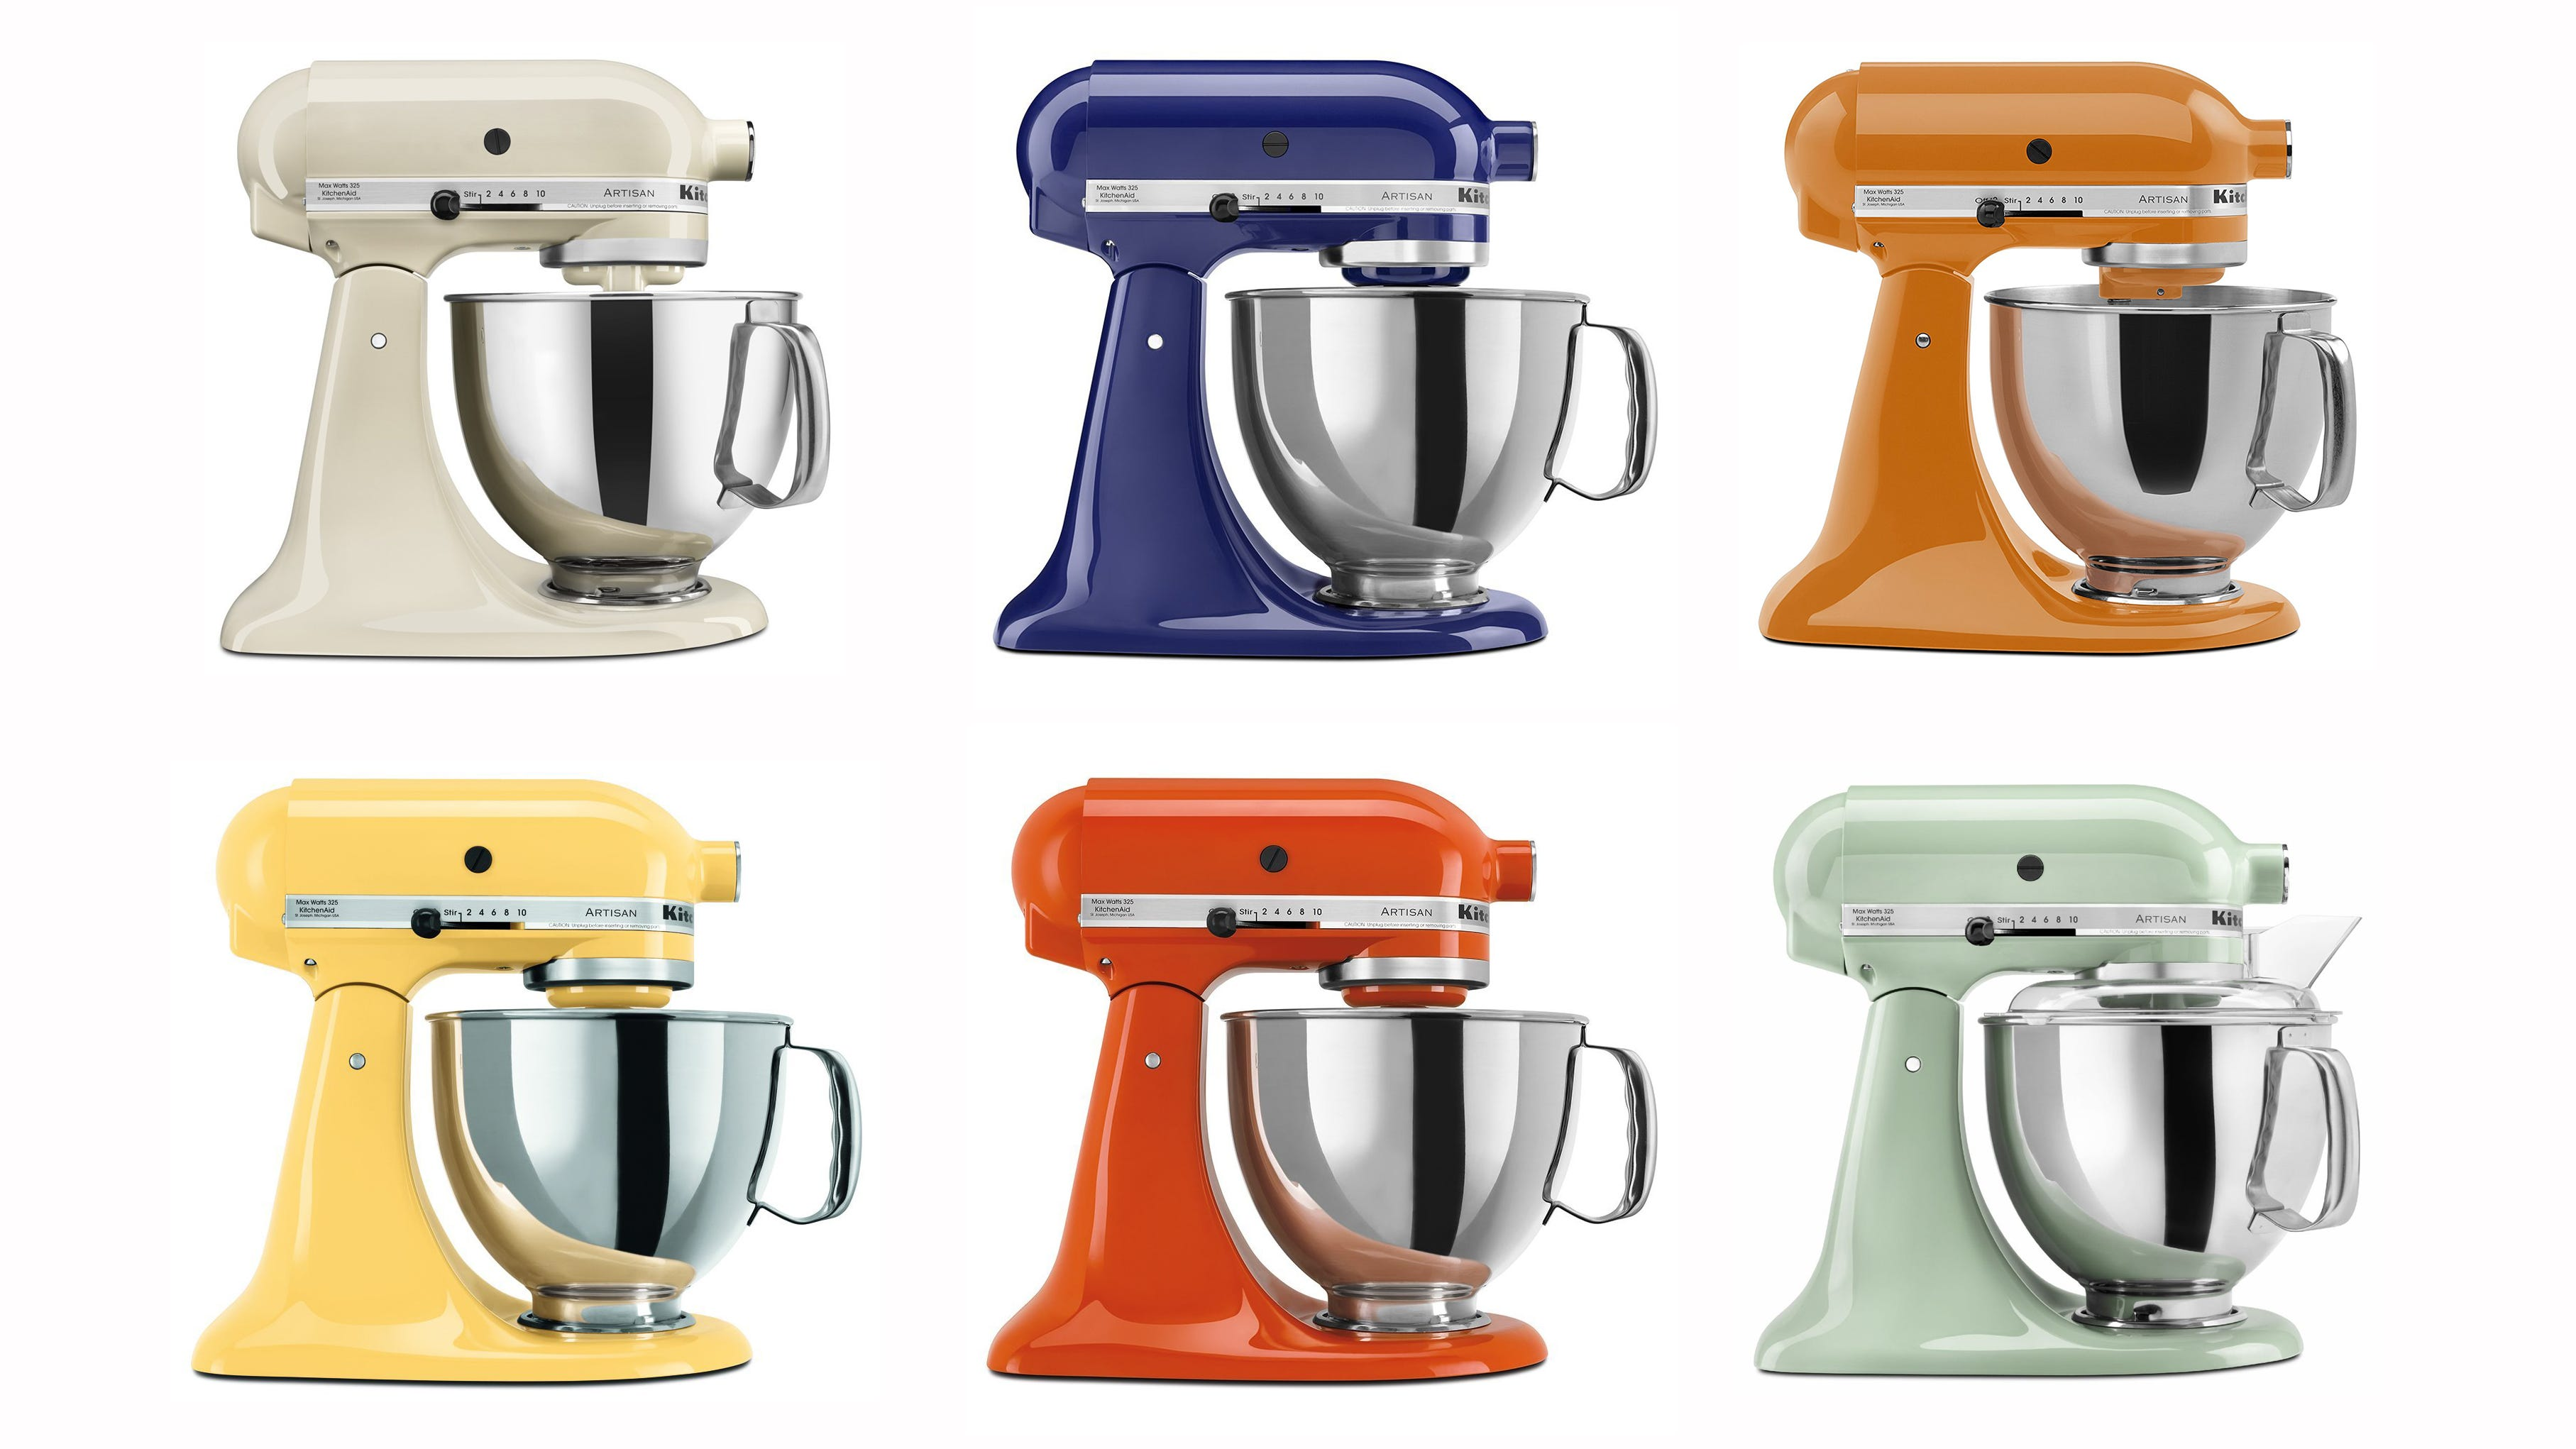 Superbe KitchenAidu0027s Popular Stand Mixer Is At Its Lowest Price